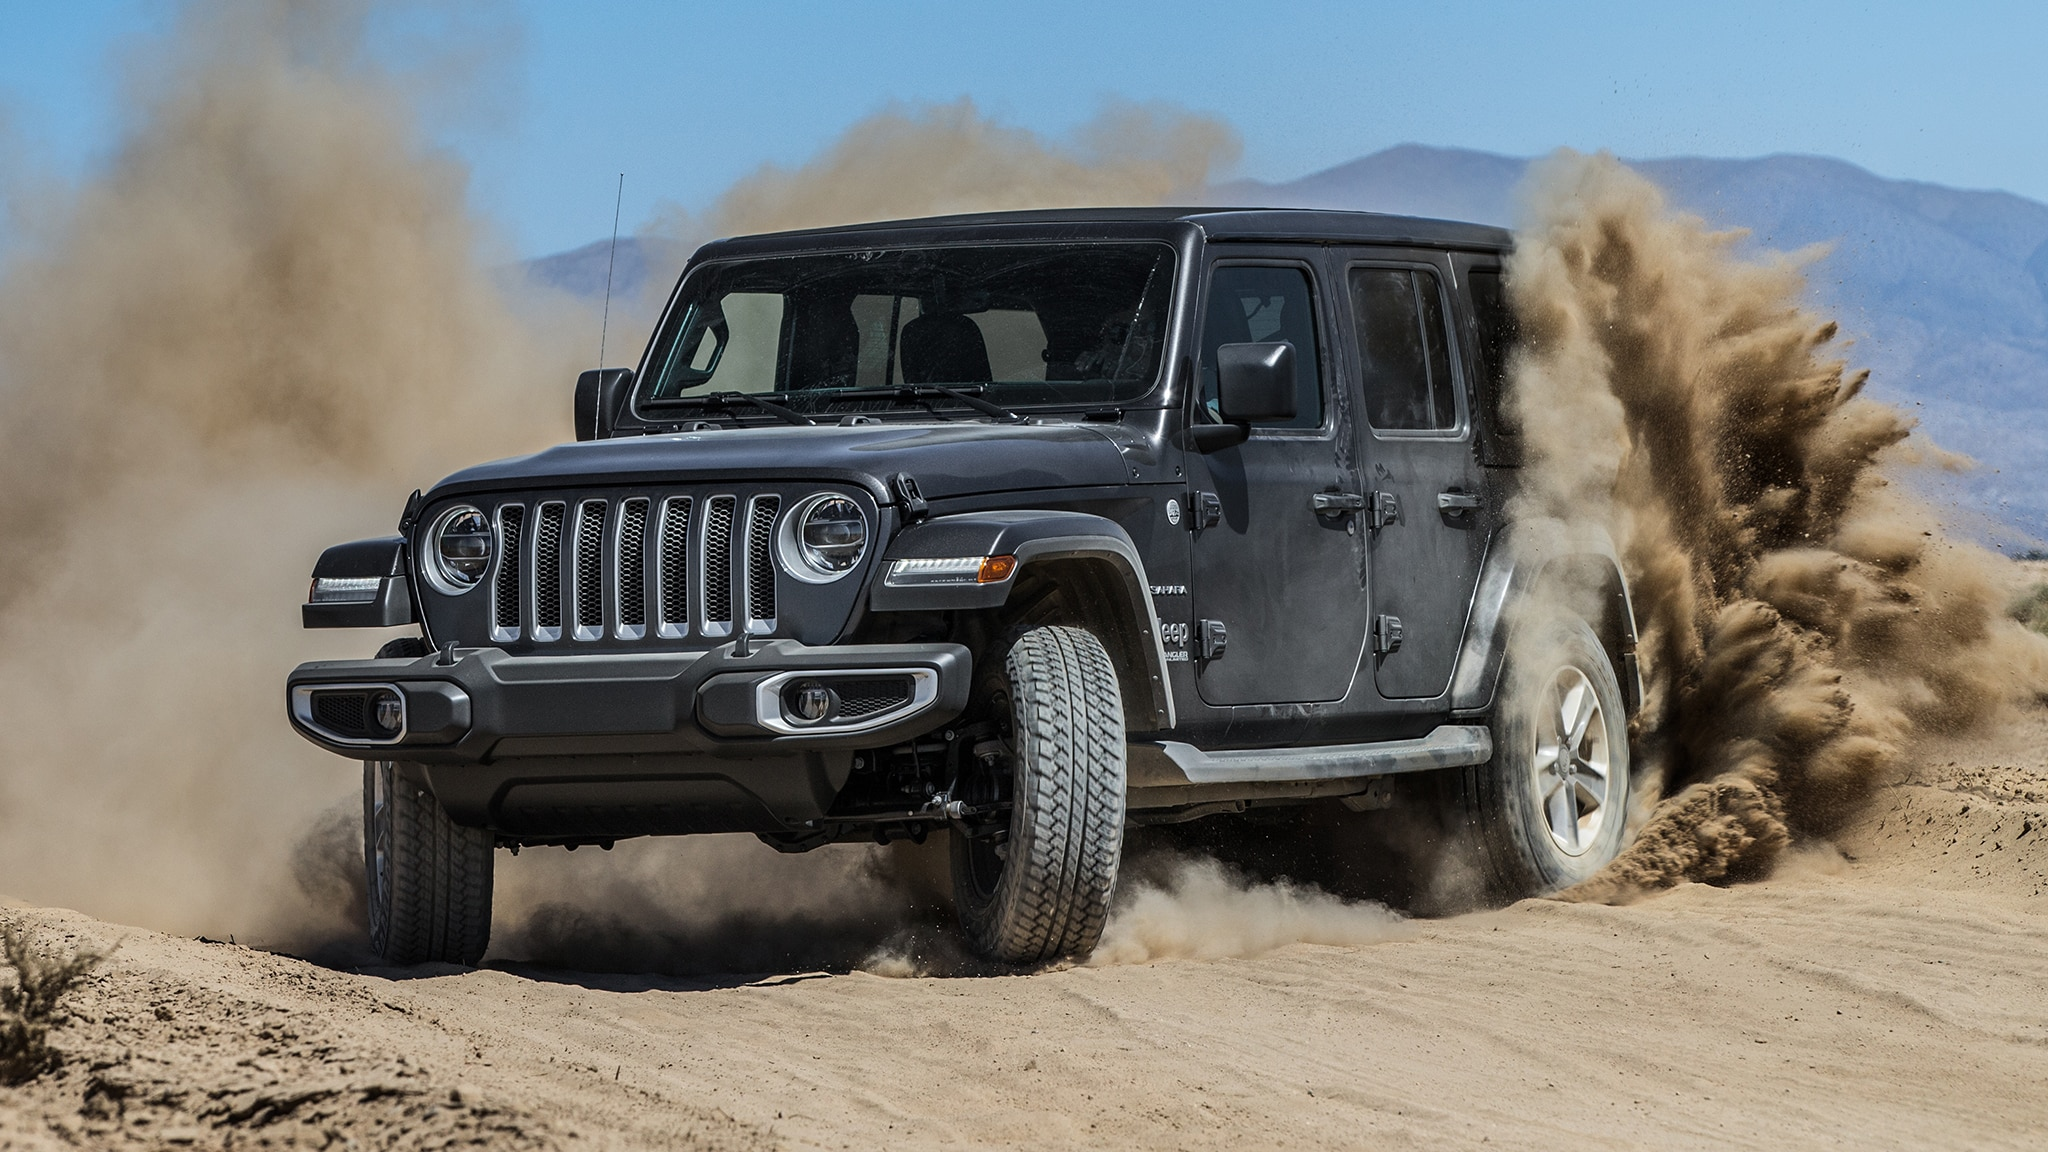 The 2020 Jeep Wrangler Diesel Is Here! | Carsmyfriends.com